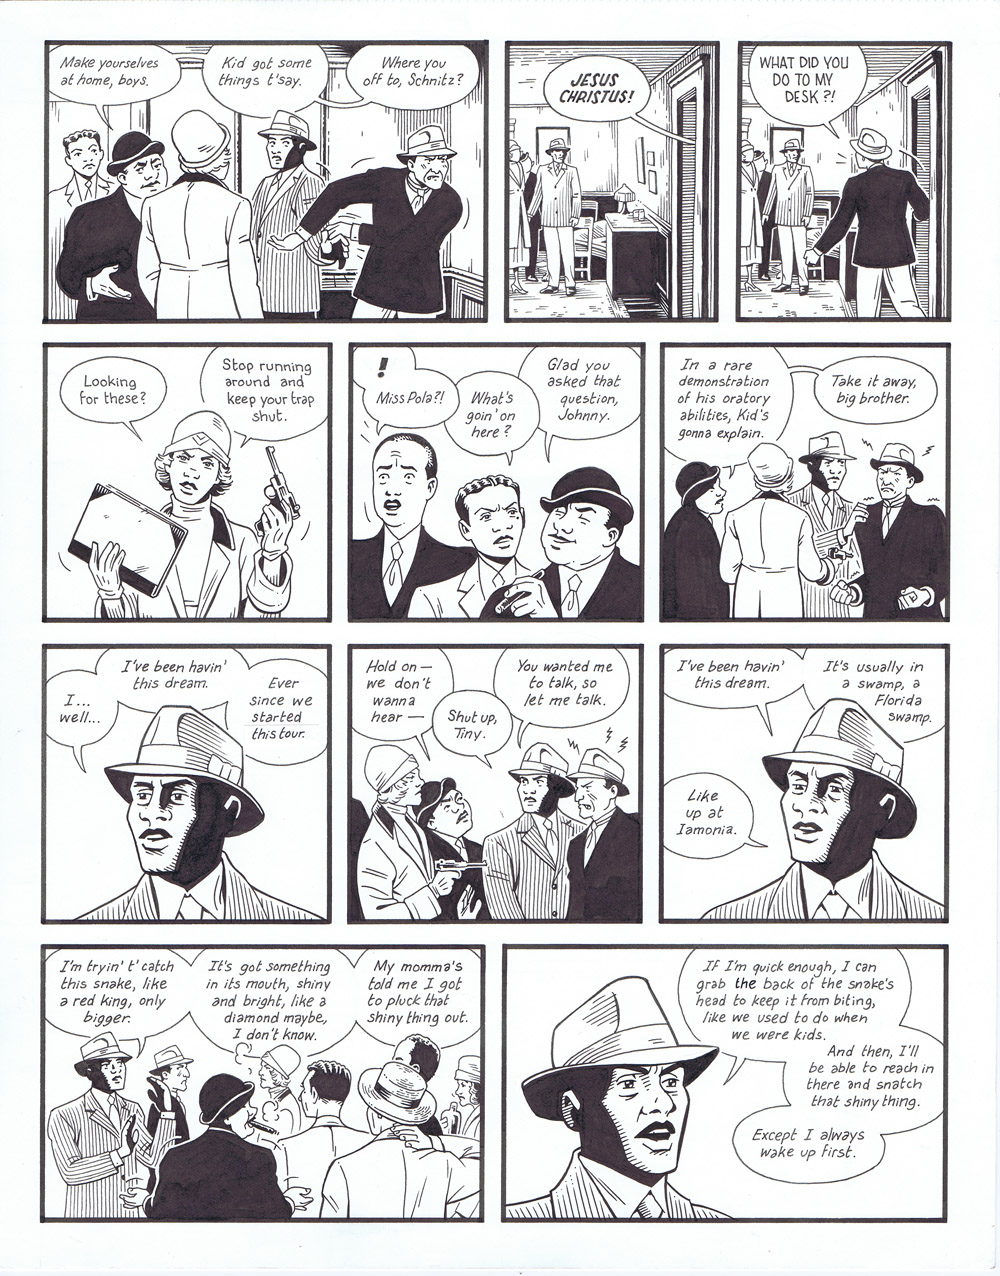 Berlin: Book 2 - page 200